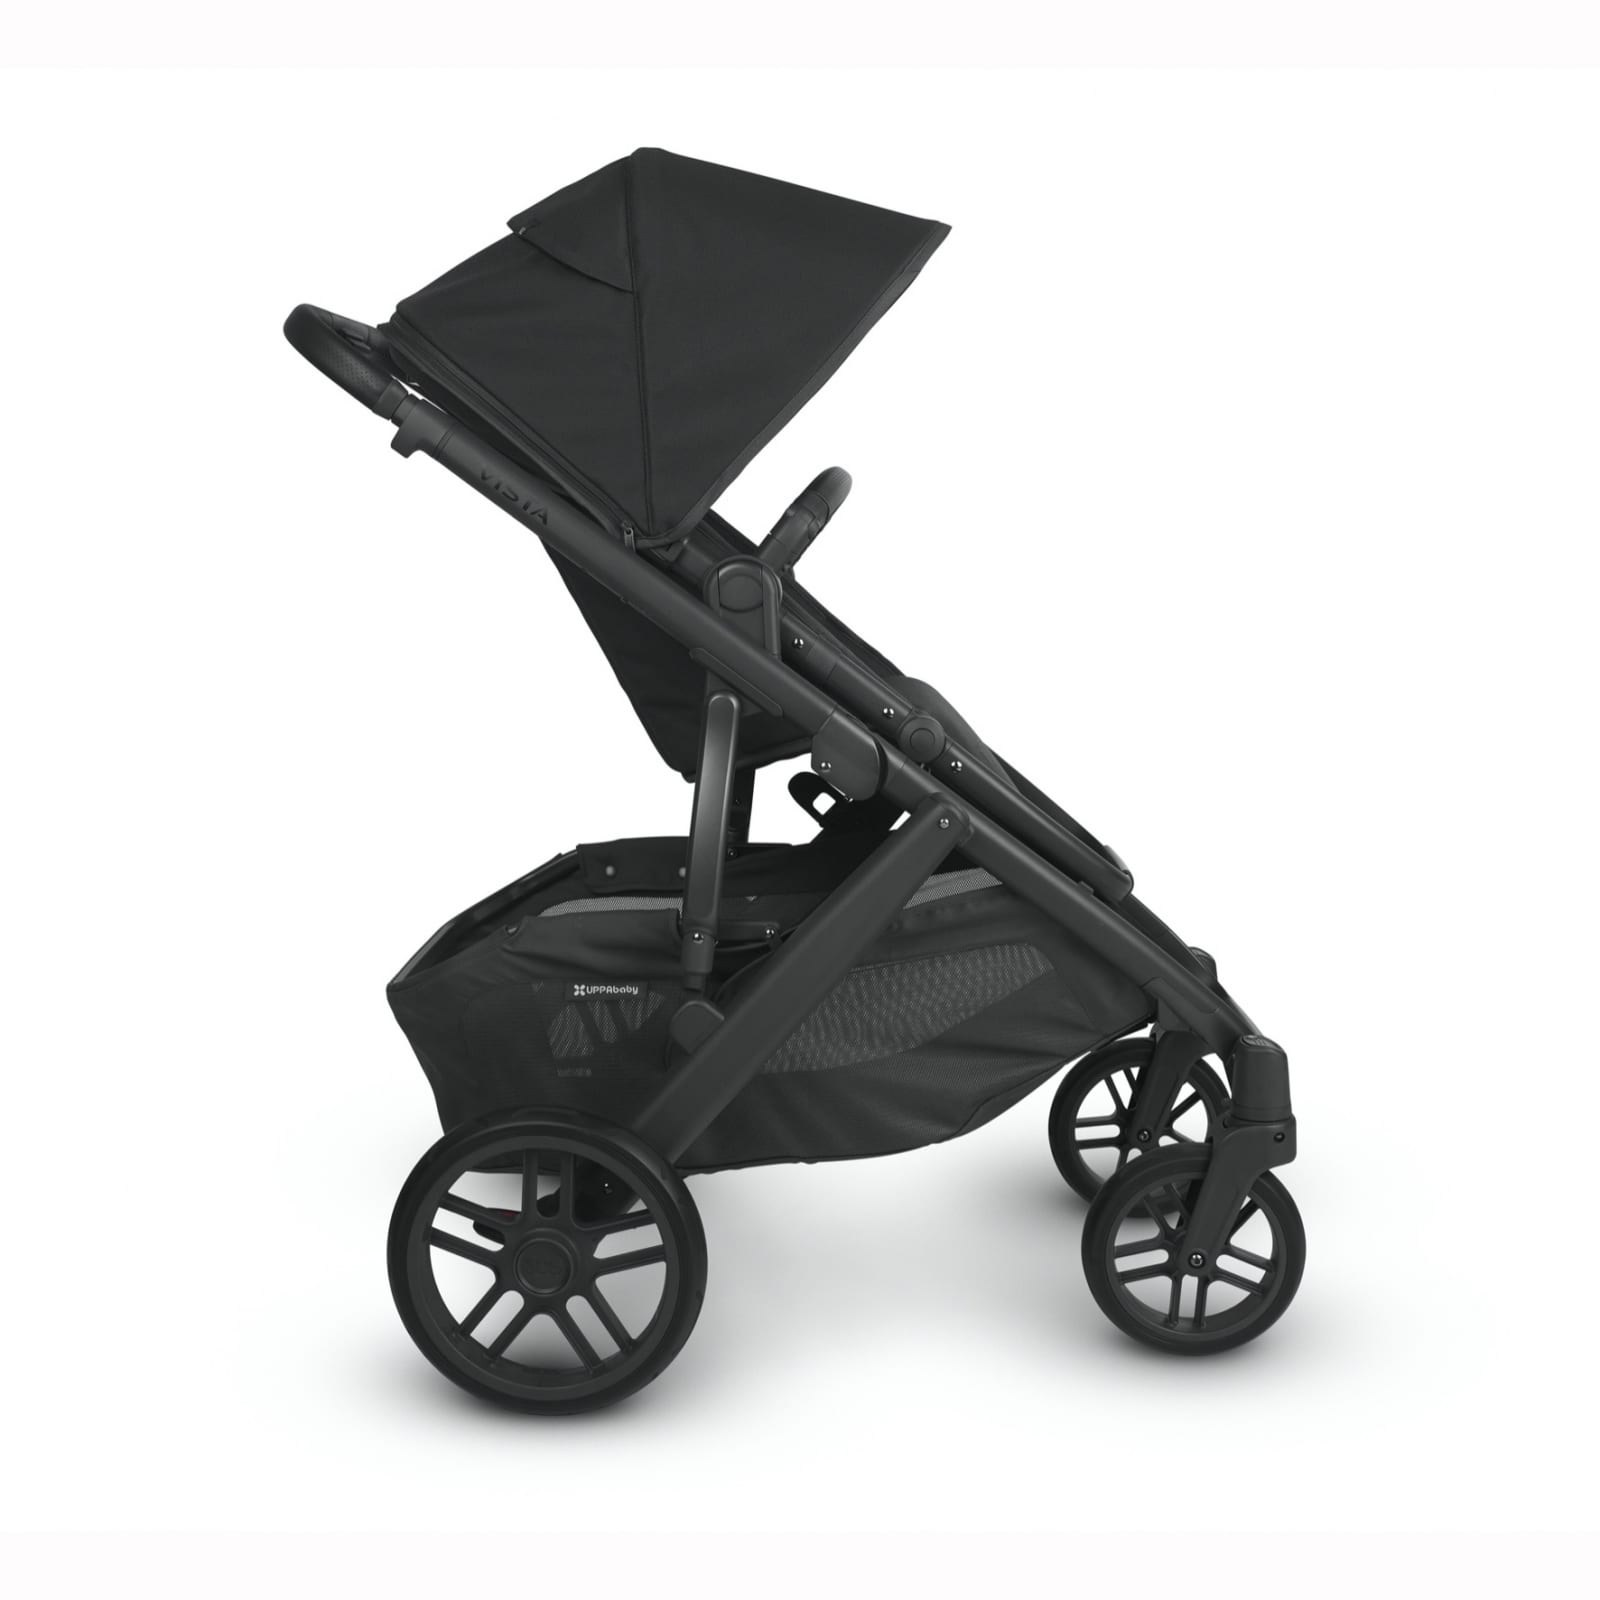 UPPABaby VISTA 2 Stroller & Carry Cot  – JAKE product image